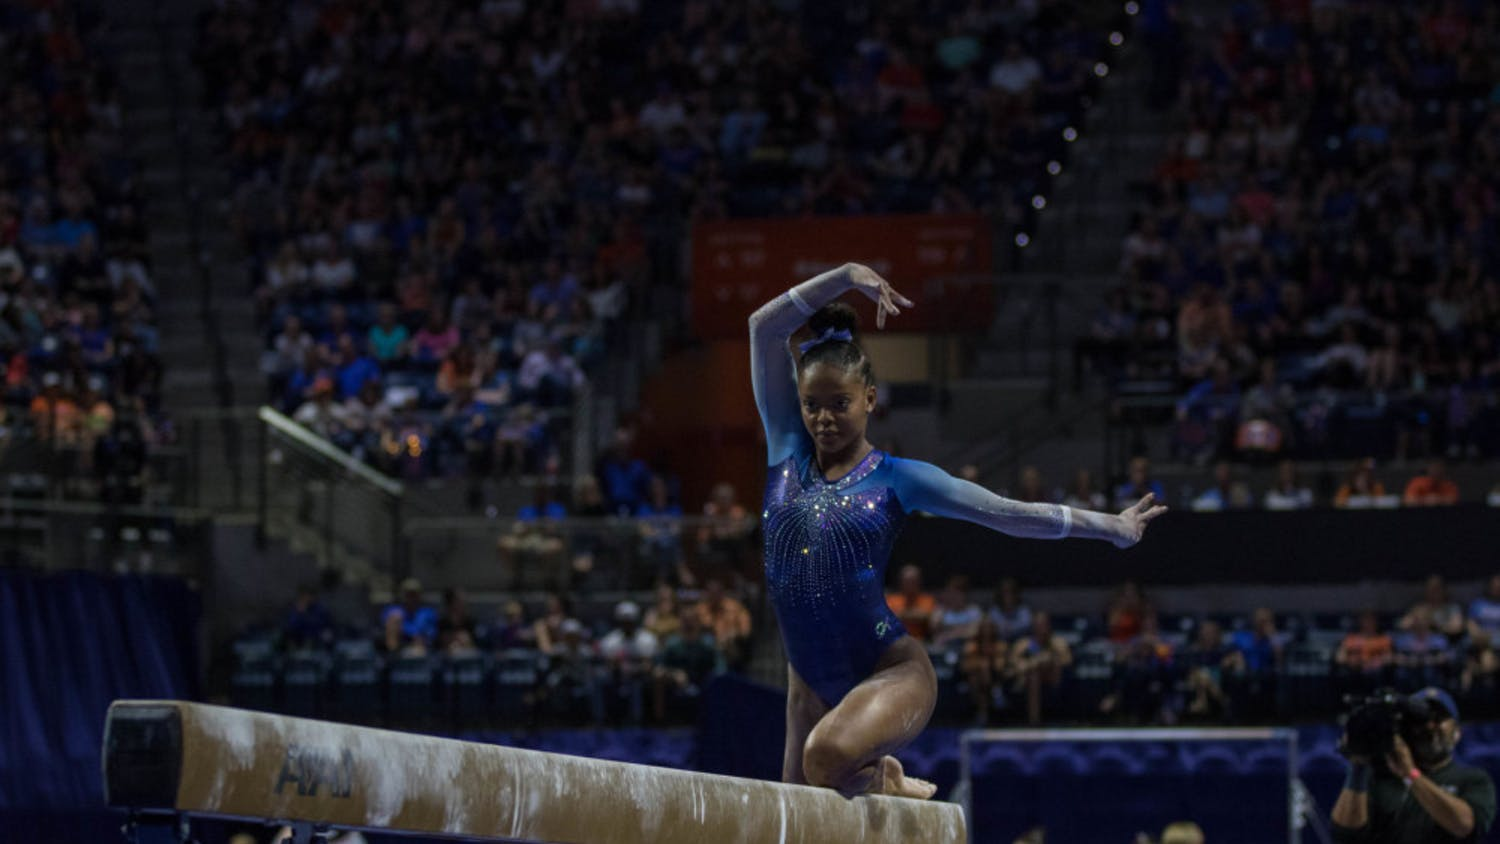 Trinity Thomas won six SEC Freshman of the Week awards and three SEC Gymnast of the Week awards during her freshman campaign at UF.